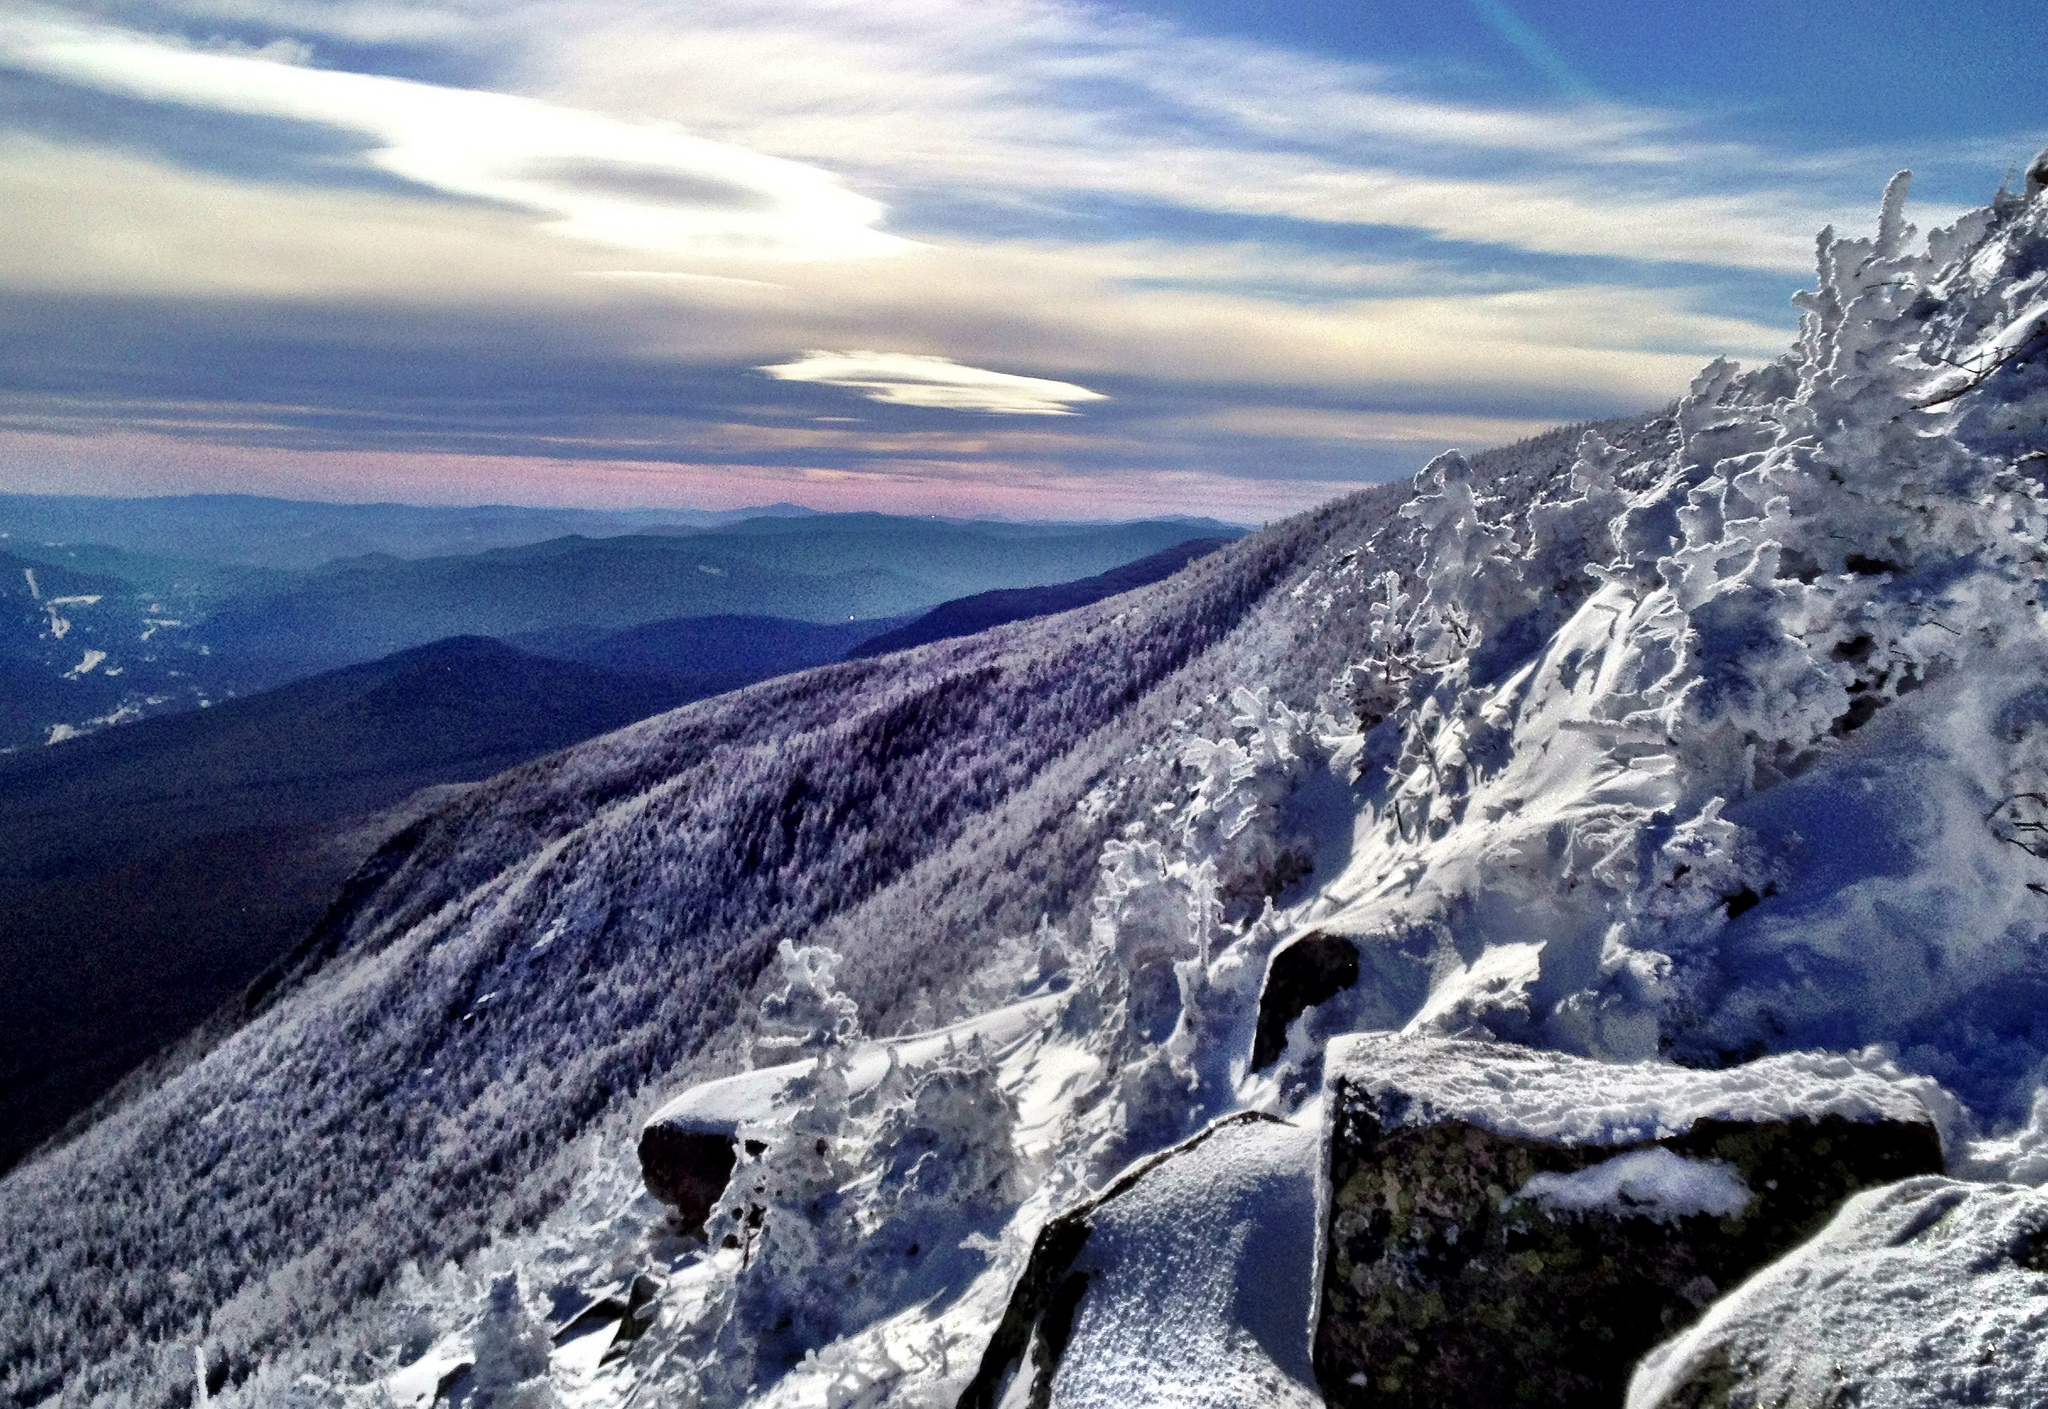 16 Spots In New Hampshire That Are Stunning In Winter